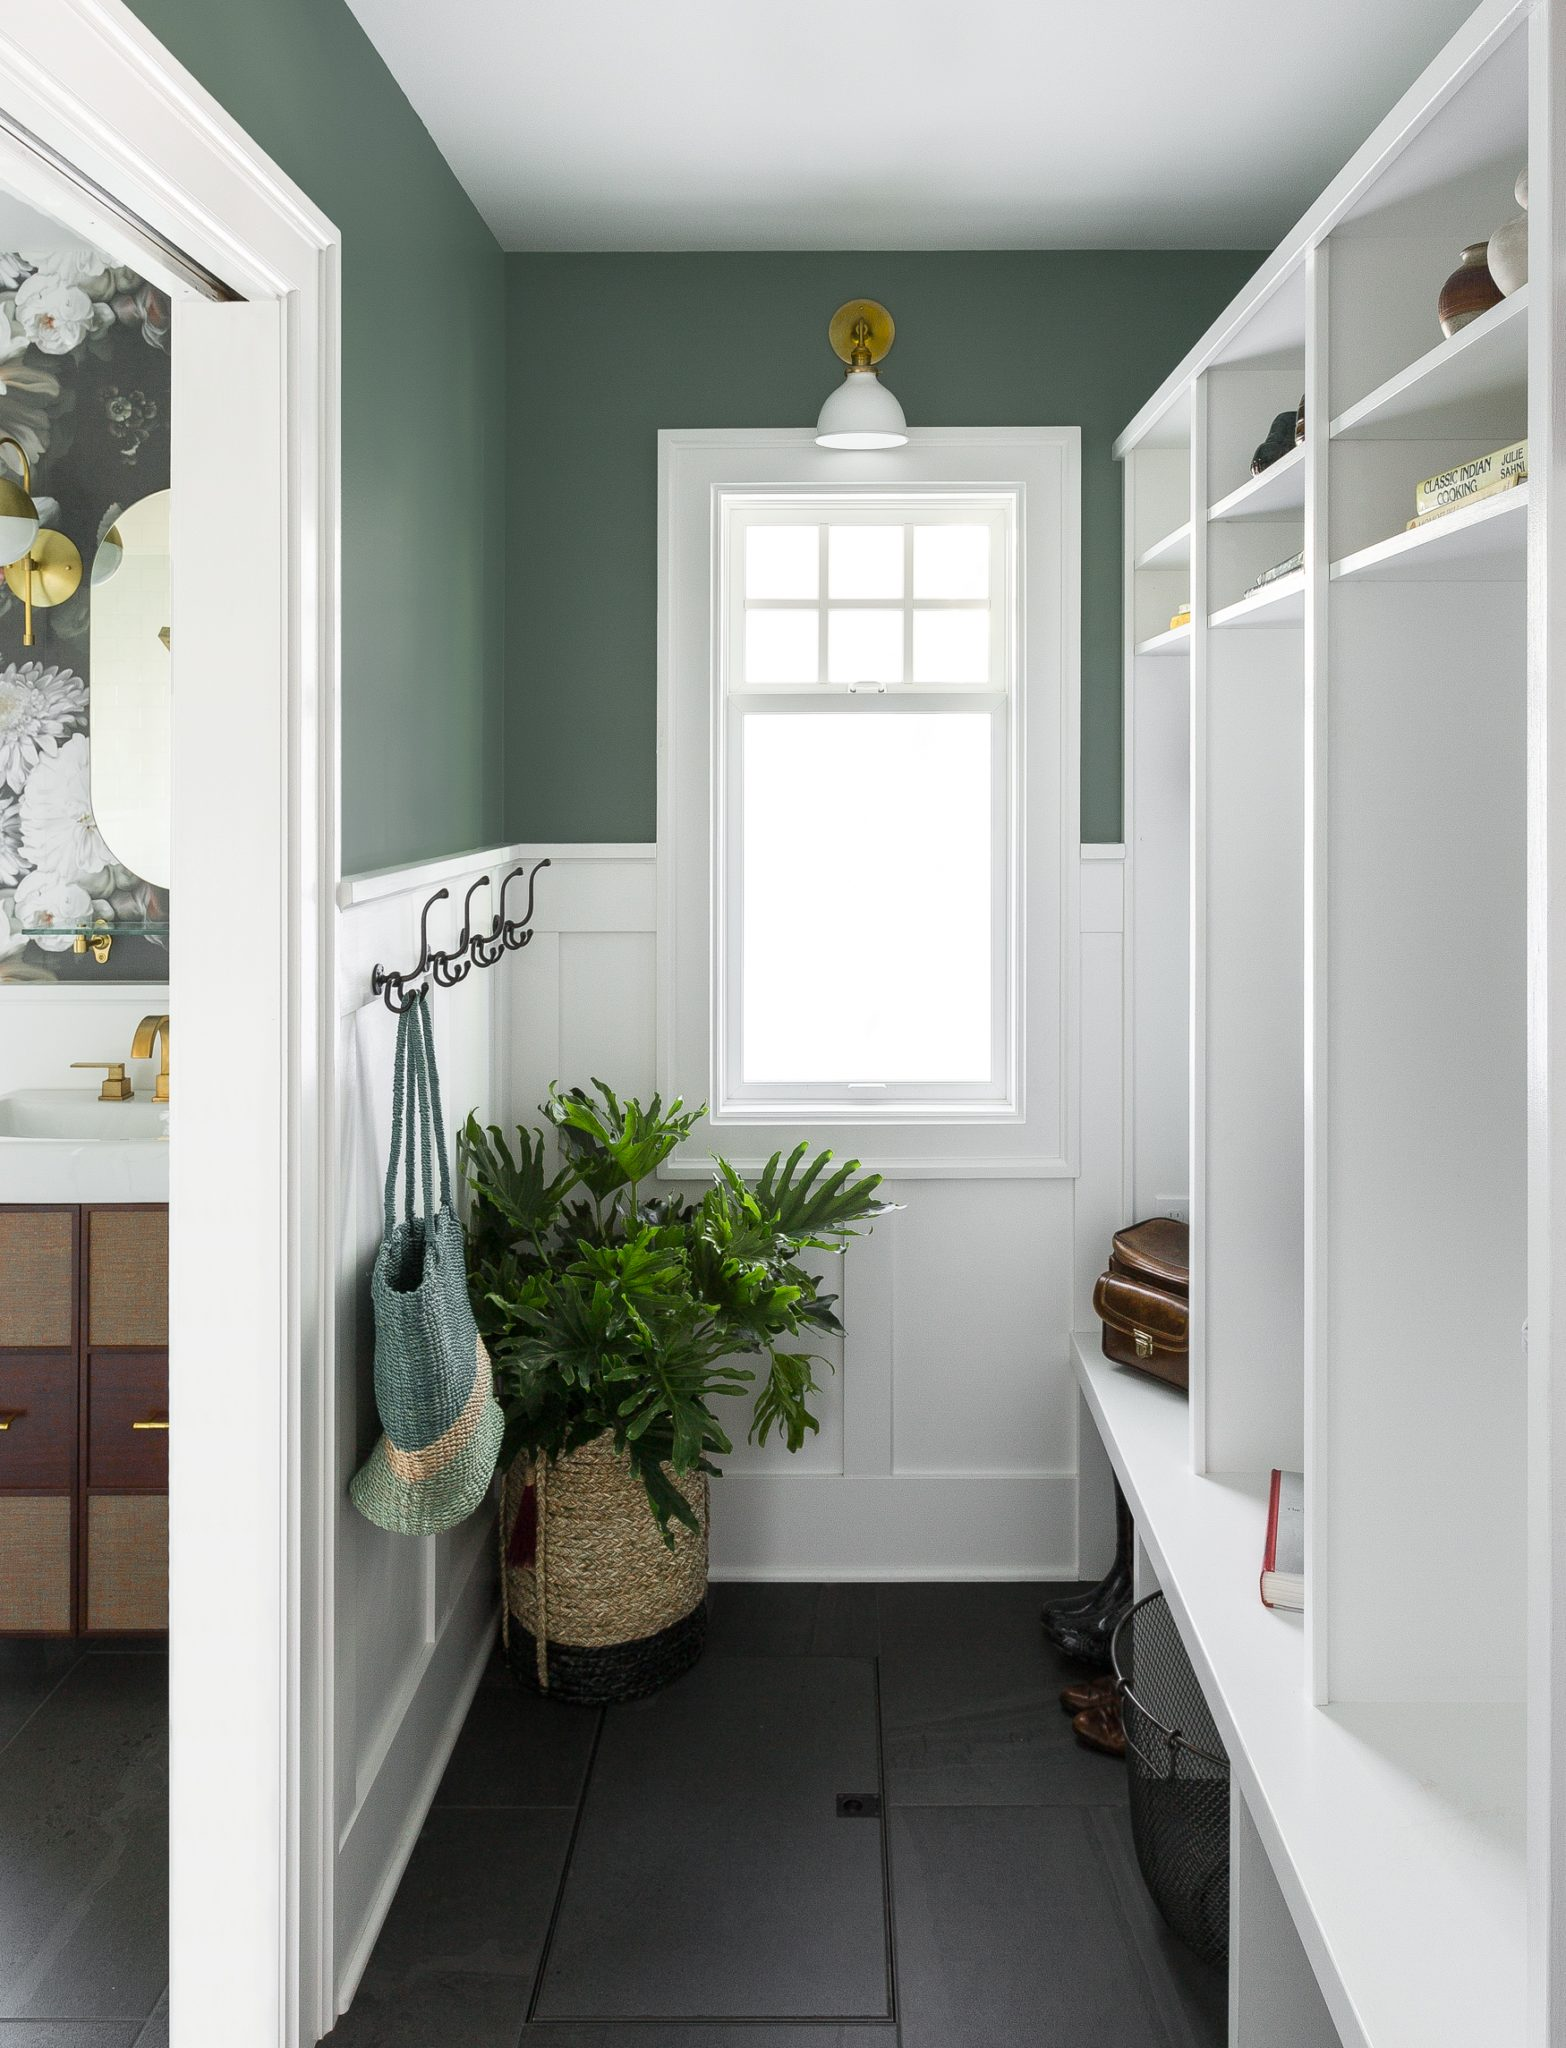 Cool green walls are a unique choice in the mudroom. The contractor, Blue Cabin Builders, constructed the built-in cubbies here, and the wall light is from Schoolhouse.